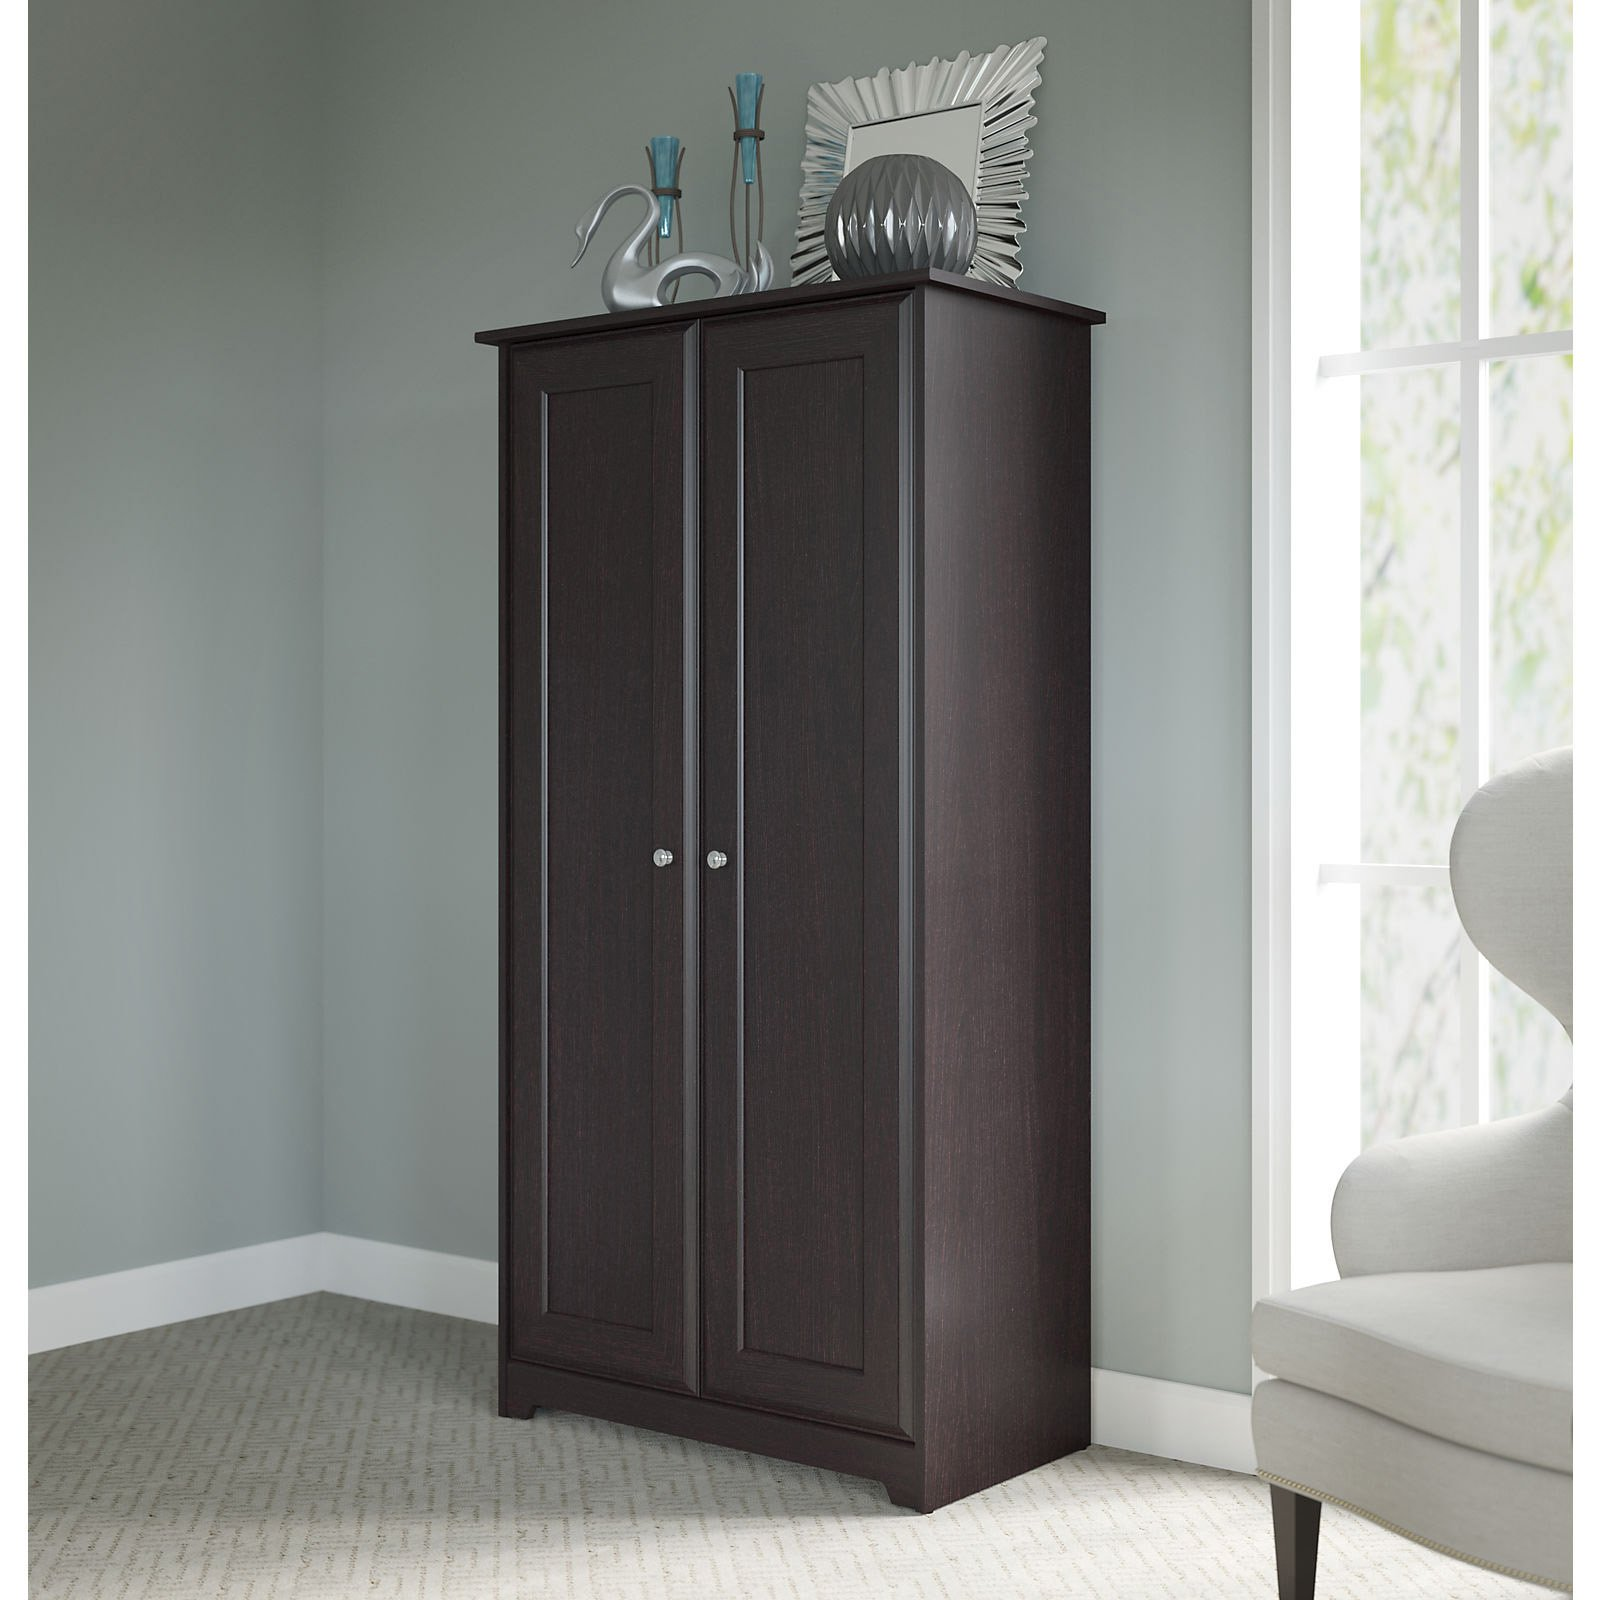 Charmant Bush Furniture Cabot Tall Storage Cabinet With Doors In Espresso Oak